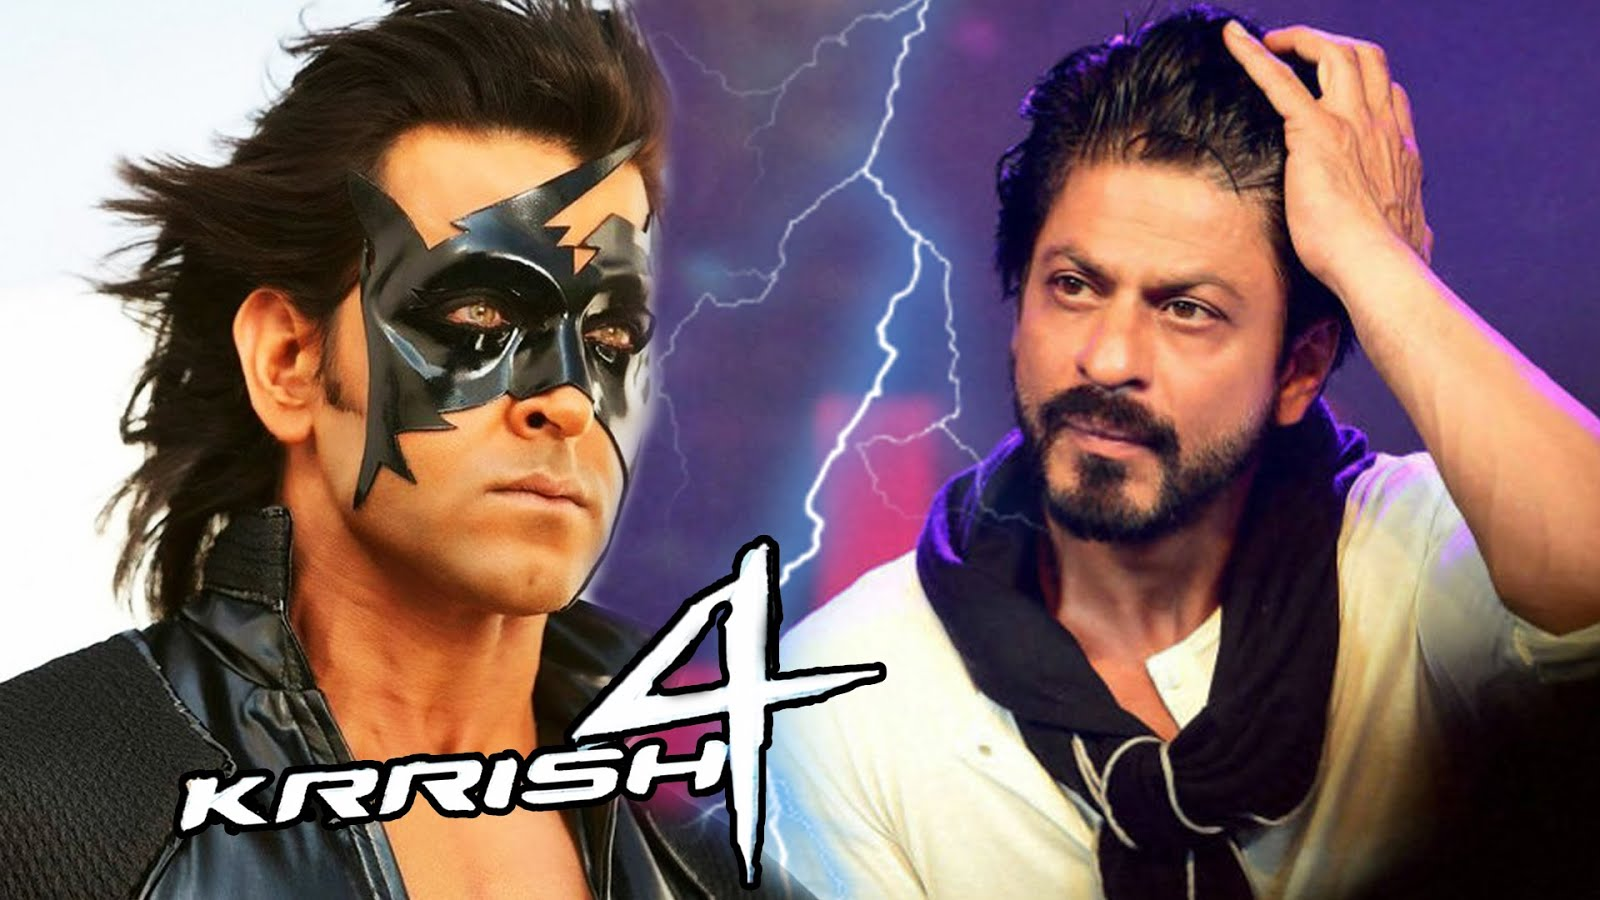 krrish 2 release date wallpaper - 2018 images & pictures - birthday